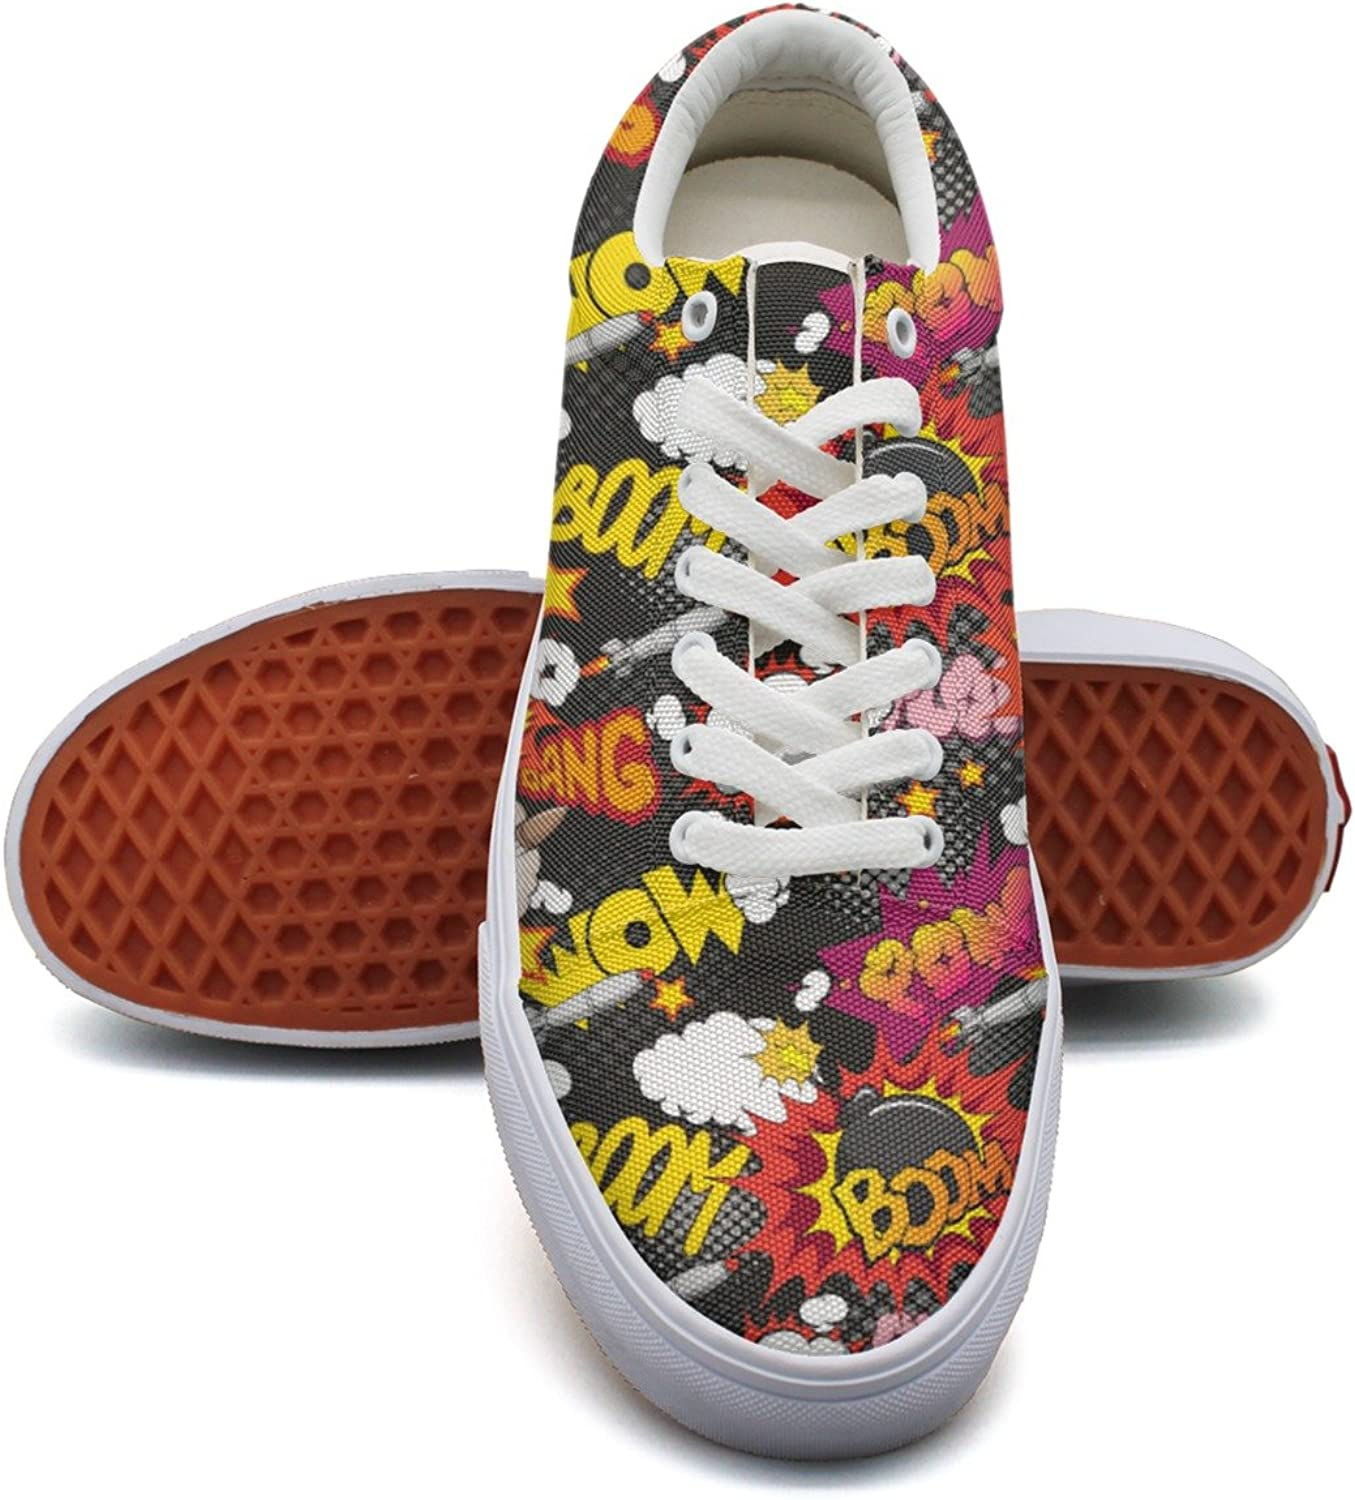 Feenfling Comic Book Explosion Womens Flat Canvas Boat shoes Low Top Hip Hop Cloth shoes for Women